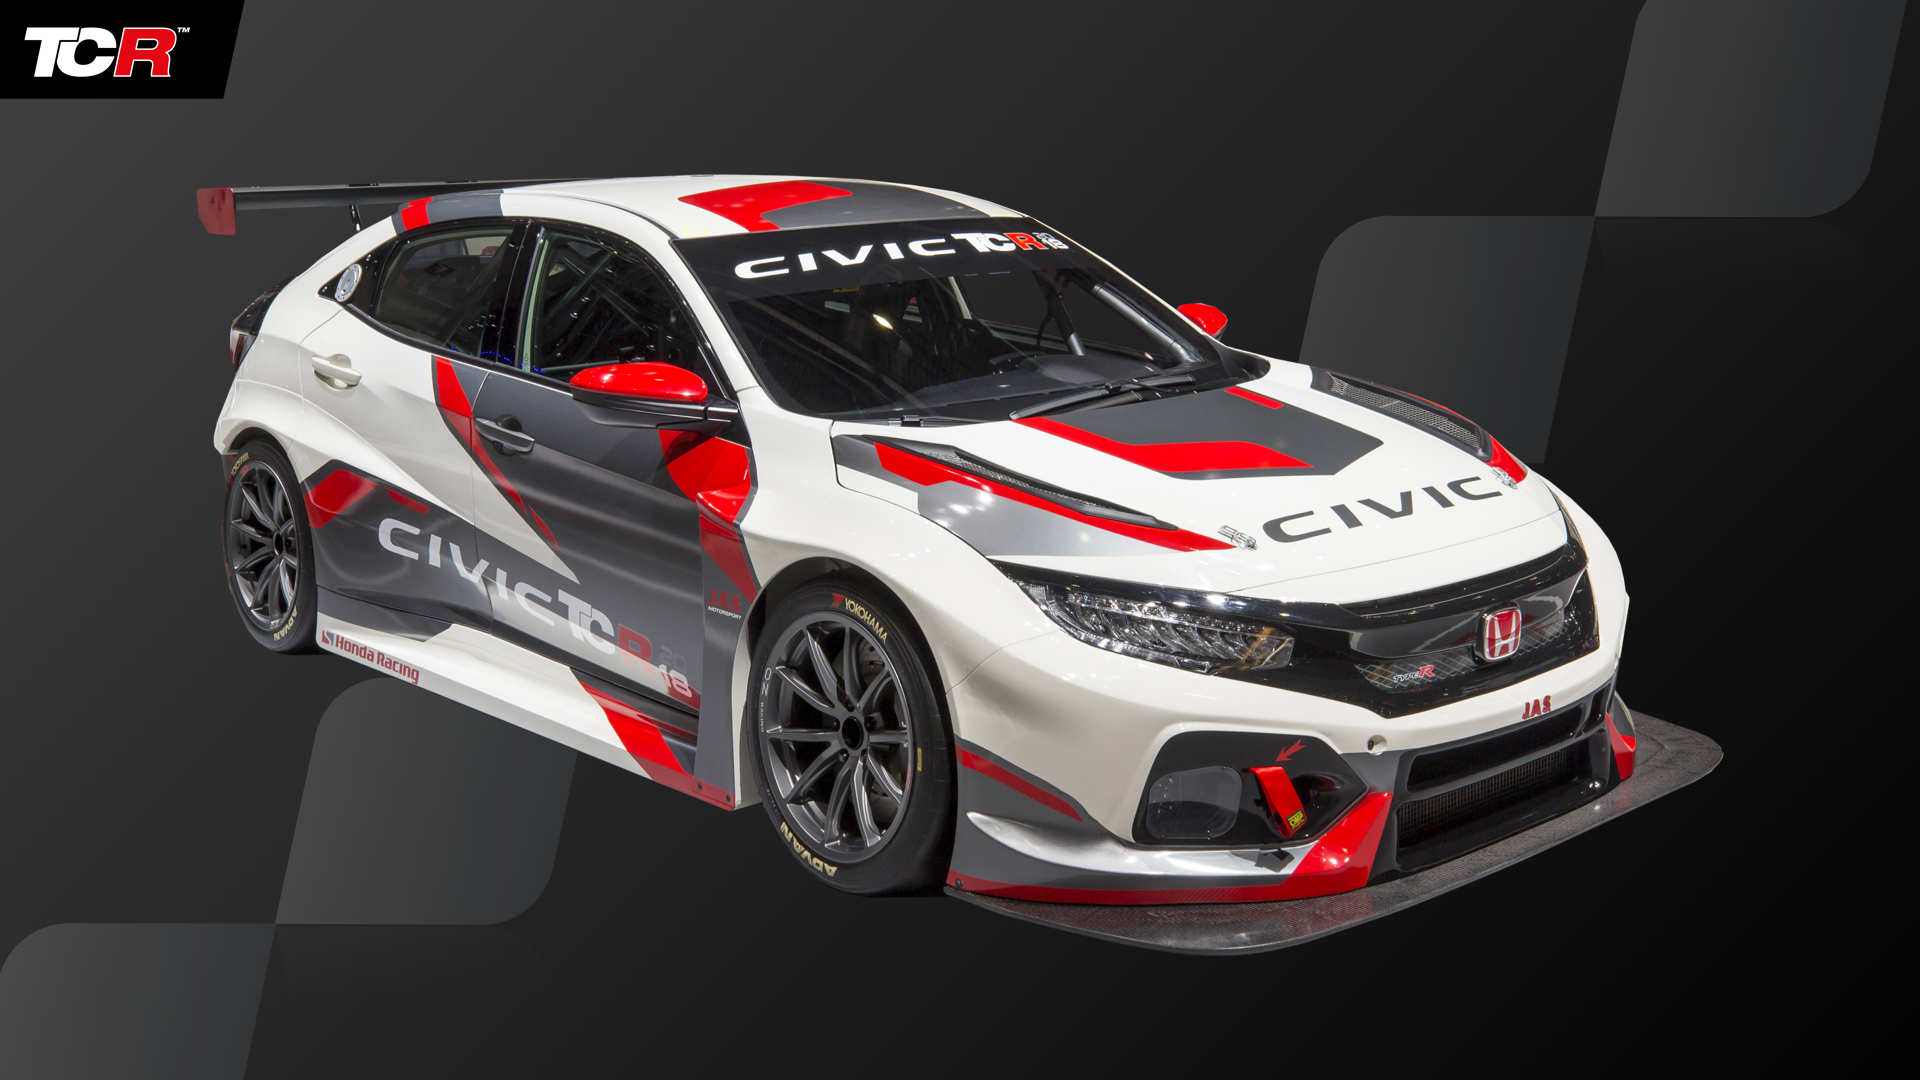 Honda Civic Type R FK7/FK8 TCR